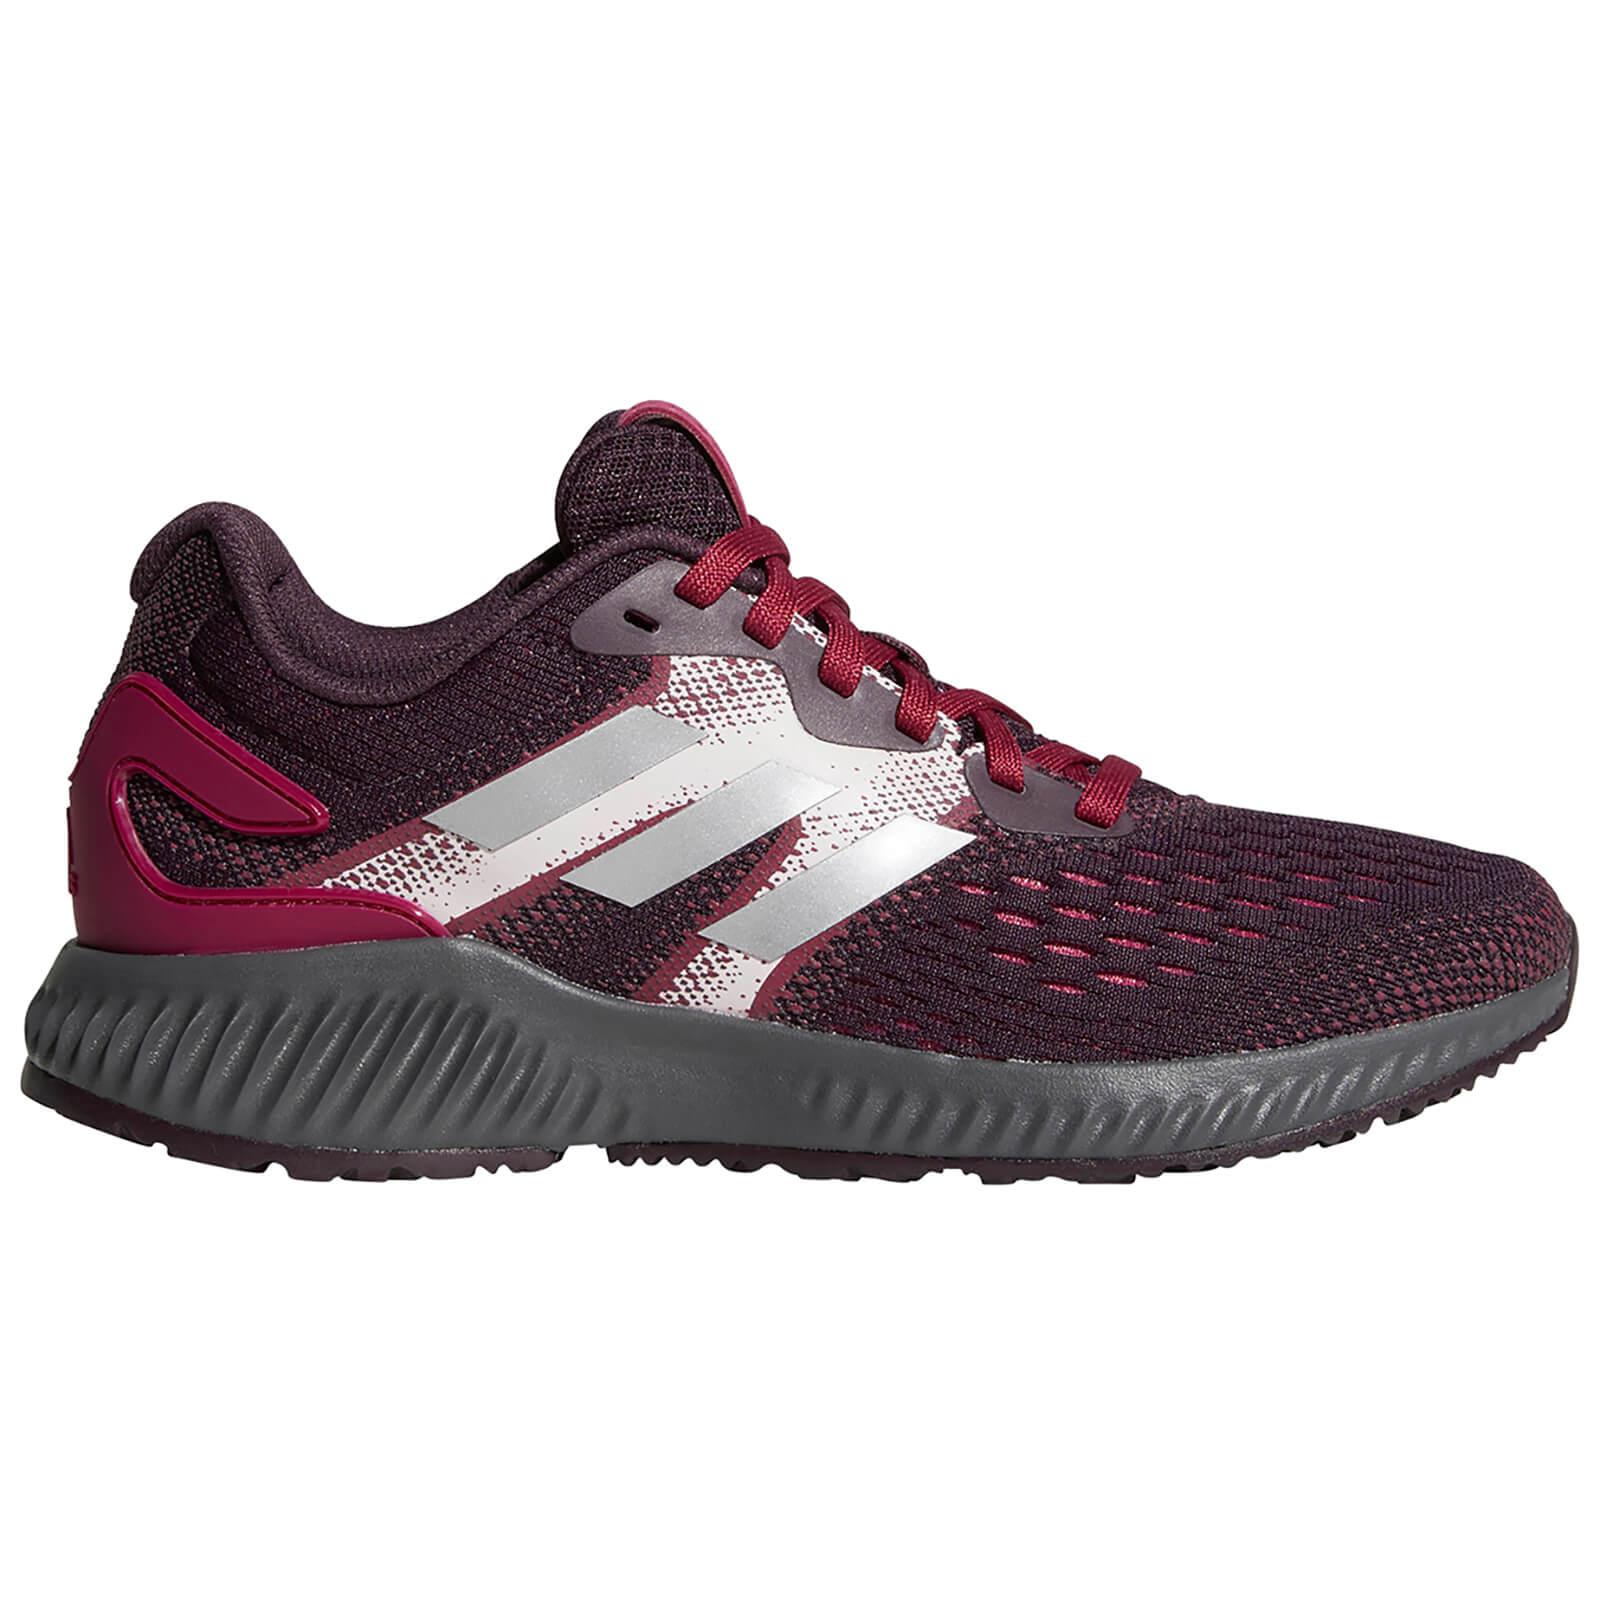 652d57d0492 Adidas Aerobounce Training Shoes in Purple - Lyst